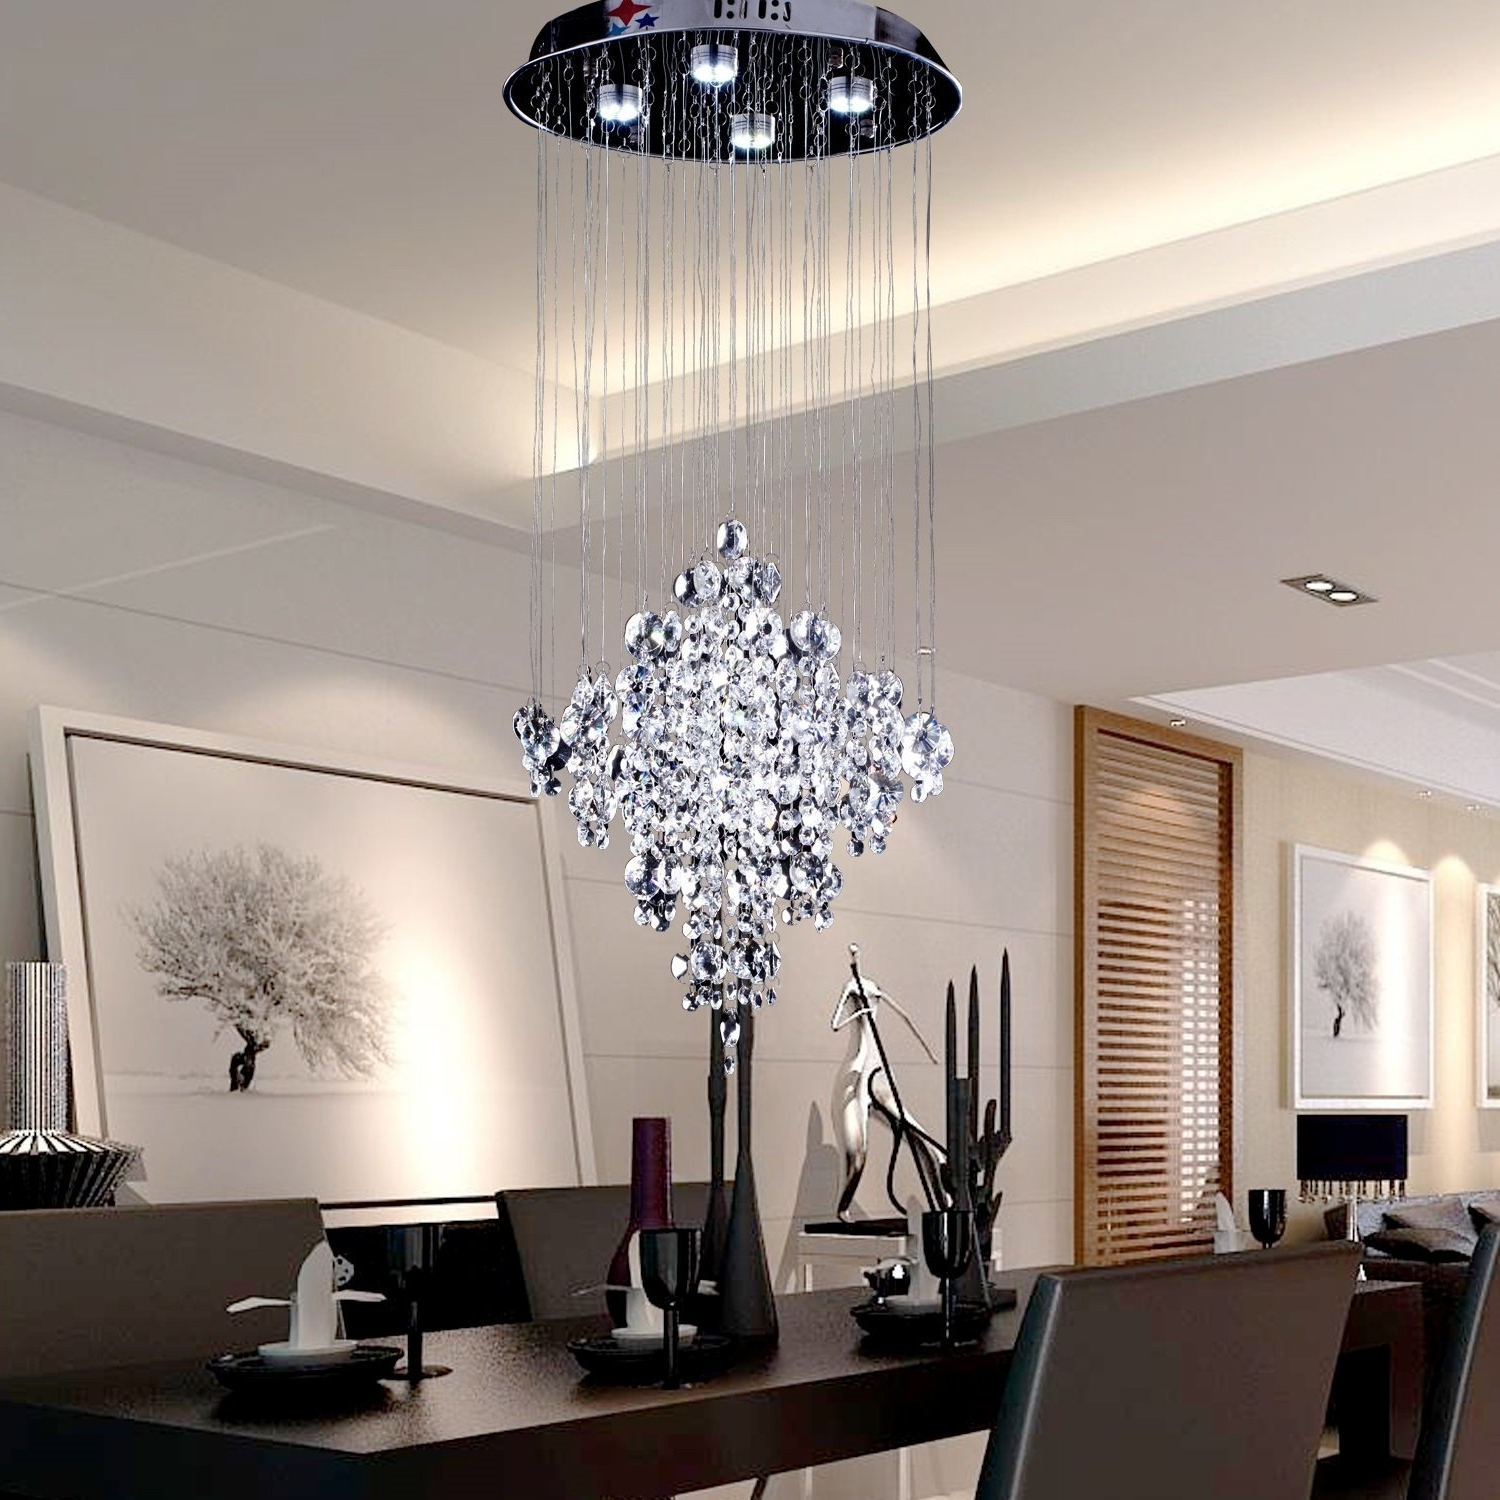 Chandeliers Design : Magnificent Nova Lighting Kobe Modern Intended For Well Known Large Chandeliers Modern (View 4 of 15)